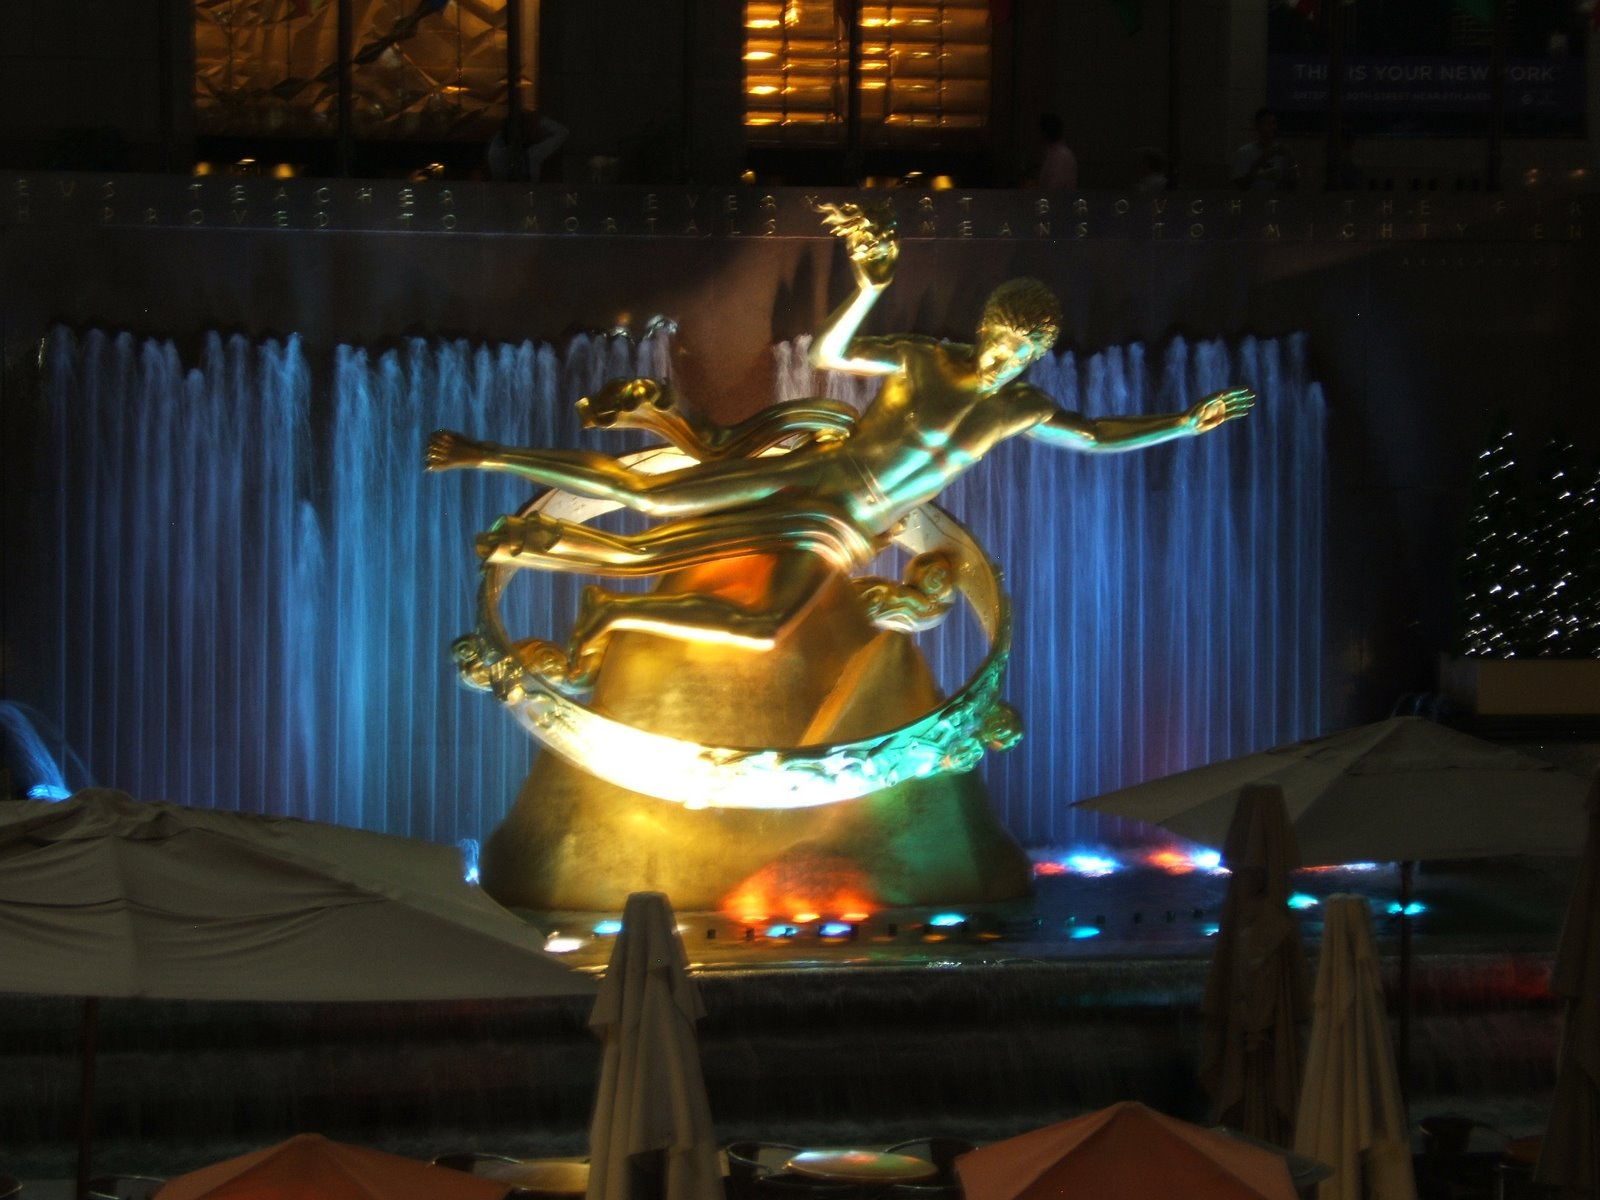 Rockefeller Plaza, New York ©2008 Tina M Welter  The iconic golden sculpture.